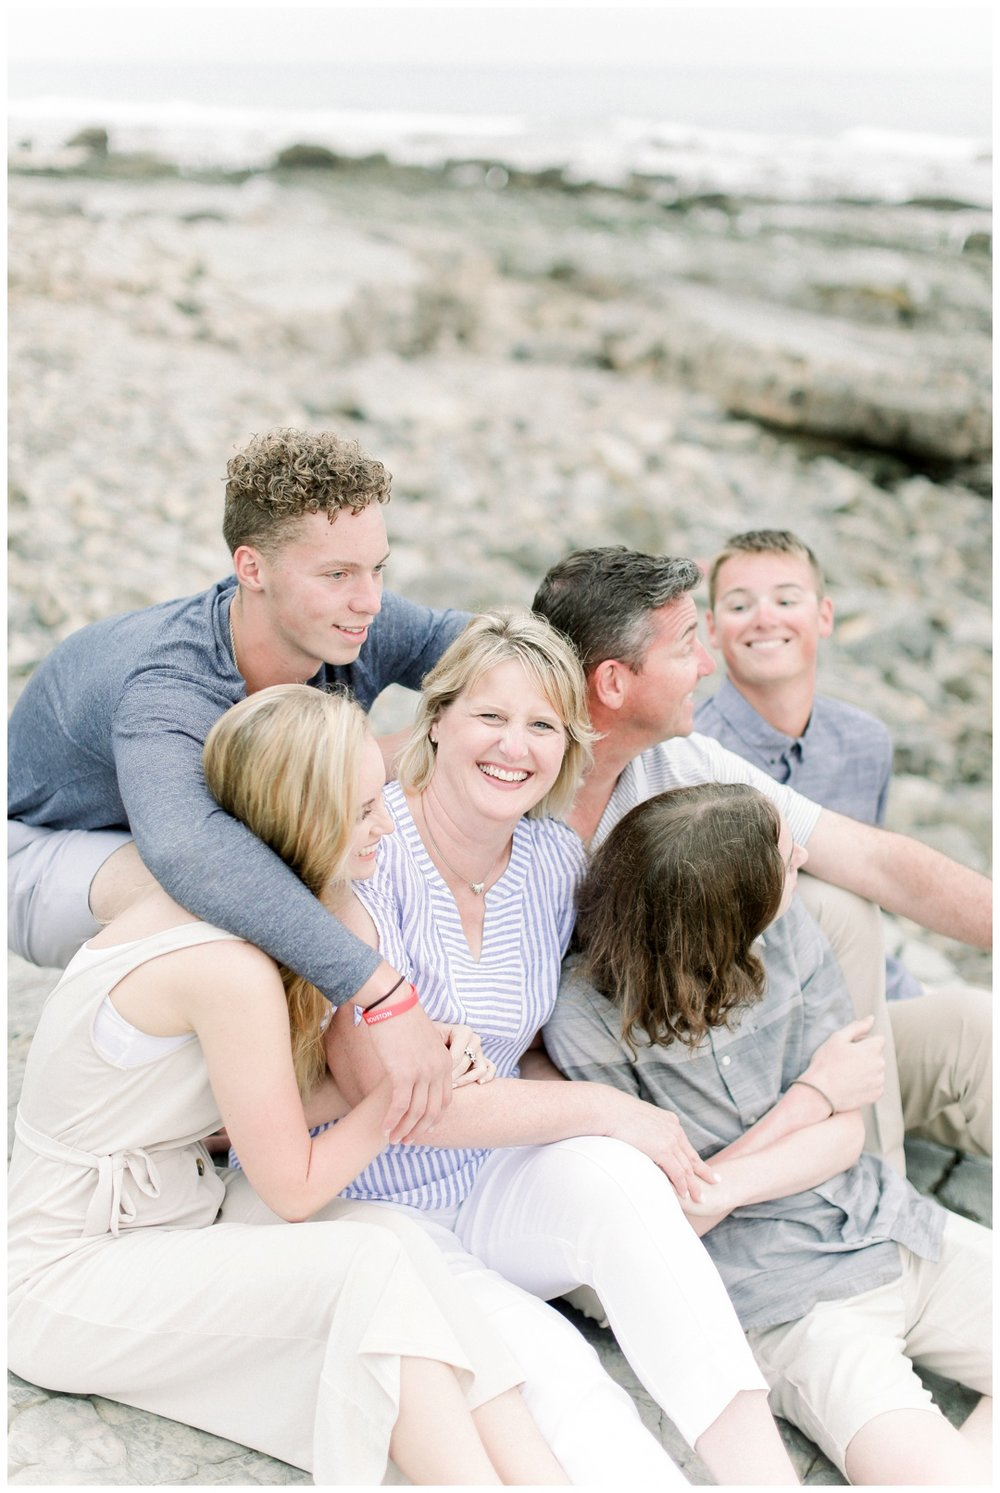 Newport_Beach_Family_Photographer_Orange_County_Family_Photography_Cori_Kleckner_Photography_Orange_County_Family_Photographer_Beach_Family_Session__1219.jpg